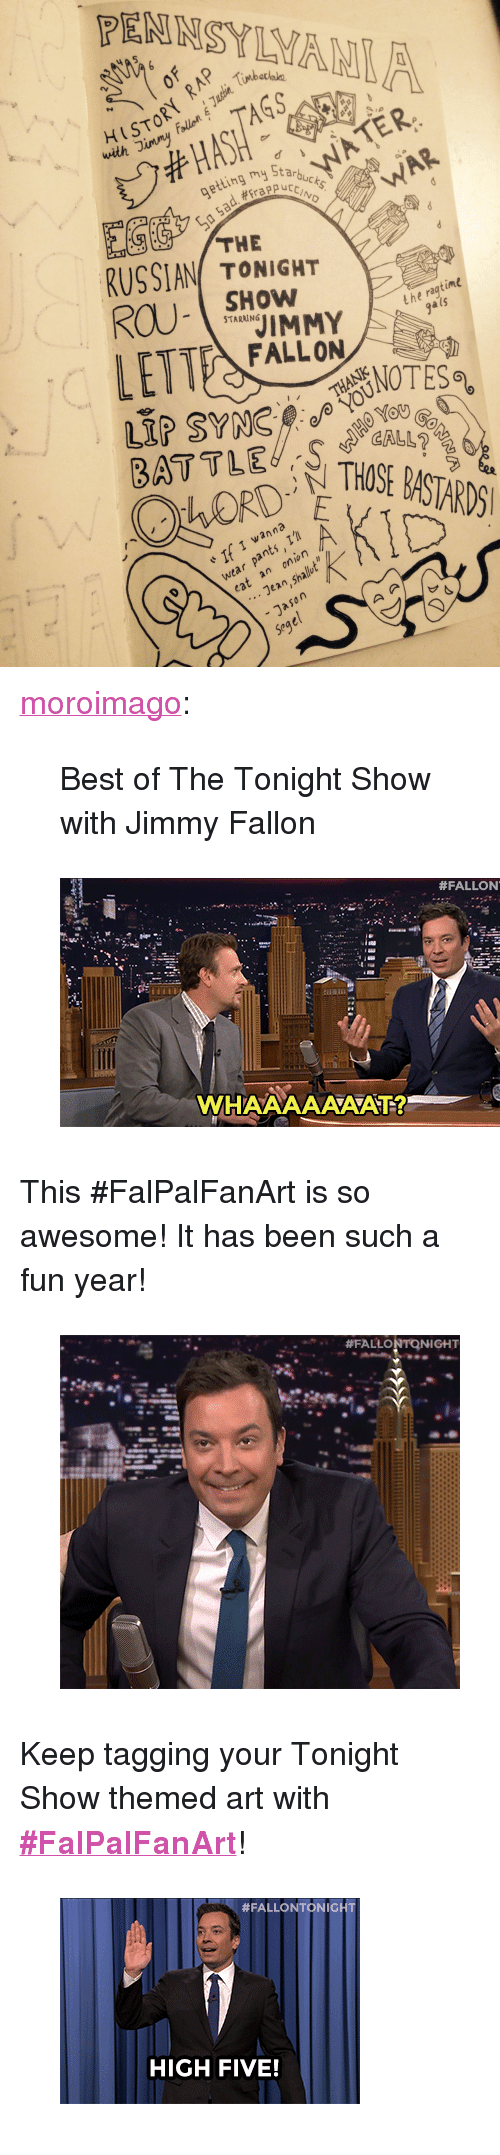 """The Tonight Show with Jimmy Fallon: with Jimmy  ing my Starb  #crappur  WAR  THE  RUSSIAN TONIGHT  SHOW  t he ragtime  gals  FALLON  RY THOSE BASTARDS  BATTLE  OTES%  60  If I vanna  wear pants  Jean,Shalut  - Jason  Segel  cat an onion <p><a class=""""tumblr_blog"""" href=""""http://moroimago.tumblr.com/post/134796038631"""" target=""""_blank"""">moroimago</a>:</p> <blockquote> <p>Best of The Tonight Show with Jimmy Fallon</p> </blockquote>  <figure class=""""tmblr-full"""" data-orig-height=""""249"""" data-orig-width=""""500""""><img src=""""https://78.media.tumblr.com/ea223018562e85fc8b21f089773c9538/tumblr_inline_nz27wydRZD1qgt12i_500.gif"""" data-orig-height=""""249"""" data-orig-width=""""500""""/></figure><p>This #FalPalFanArt is so awesome! It has been such a fun year!</p><figure class=""""tmblr-full"""" data-orig-height=""""354"""" data-orig-width=""""400""""><img src=""""https://78.media.tumblr.com/b9d438672b94e1afb732bd083976df7f/tumblr_inline_nz27ypGGdS1qgt12i_500.gif"""" data-orig-height=""""354"""" data-orig-width=""""400""""/></figure><p>Keep tagging your Tonight Show themed art with <b><a href=""""http://fallontonight.tumblr.com/search/%23FalPalFanArt"""" target=""""_blank"""">#FalPalFanArt</a></b>!</p><figure class=""""tmblr-full"""" data-orig-height=""""206"""" data-orig-width=""""300""""><img src=""""https://78.media.tumblr.com/5e3f7a5dd019188937e2e9436b8cf53f/tumblr_inline_nz28c6X8q31qgt12i_500.gif"""" data-orig-height=""""206"""" data-orig-width=""""300""""/></figure>"""